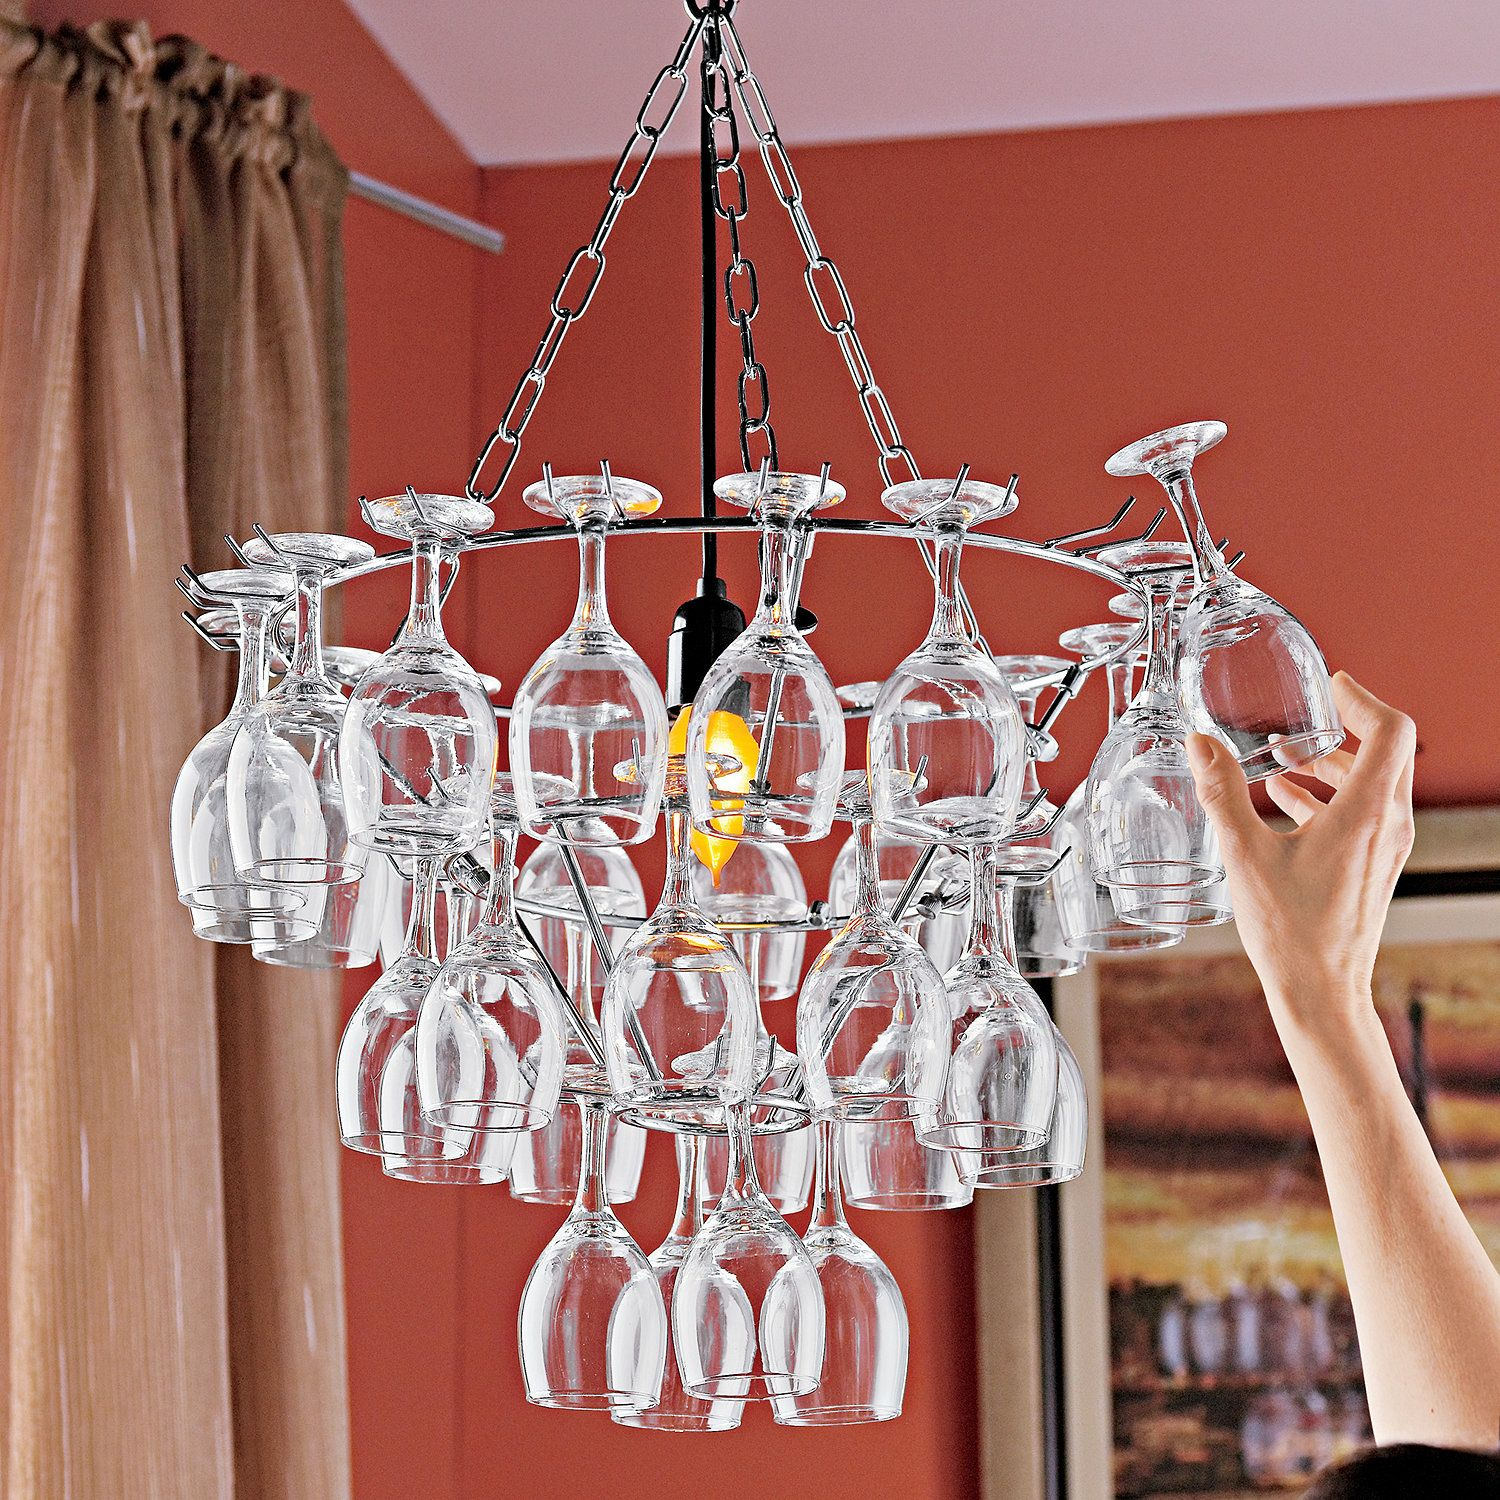 Interior Designs Stunning How To Make Your Own Chandelier Ideas